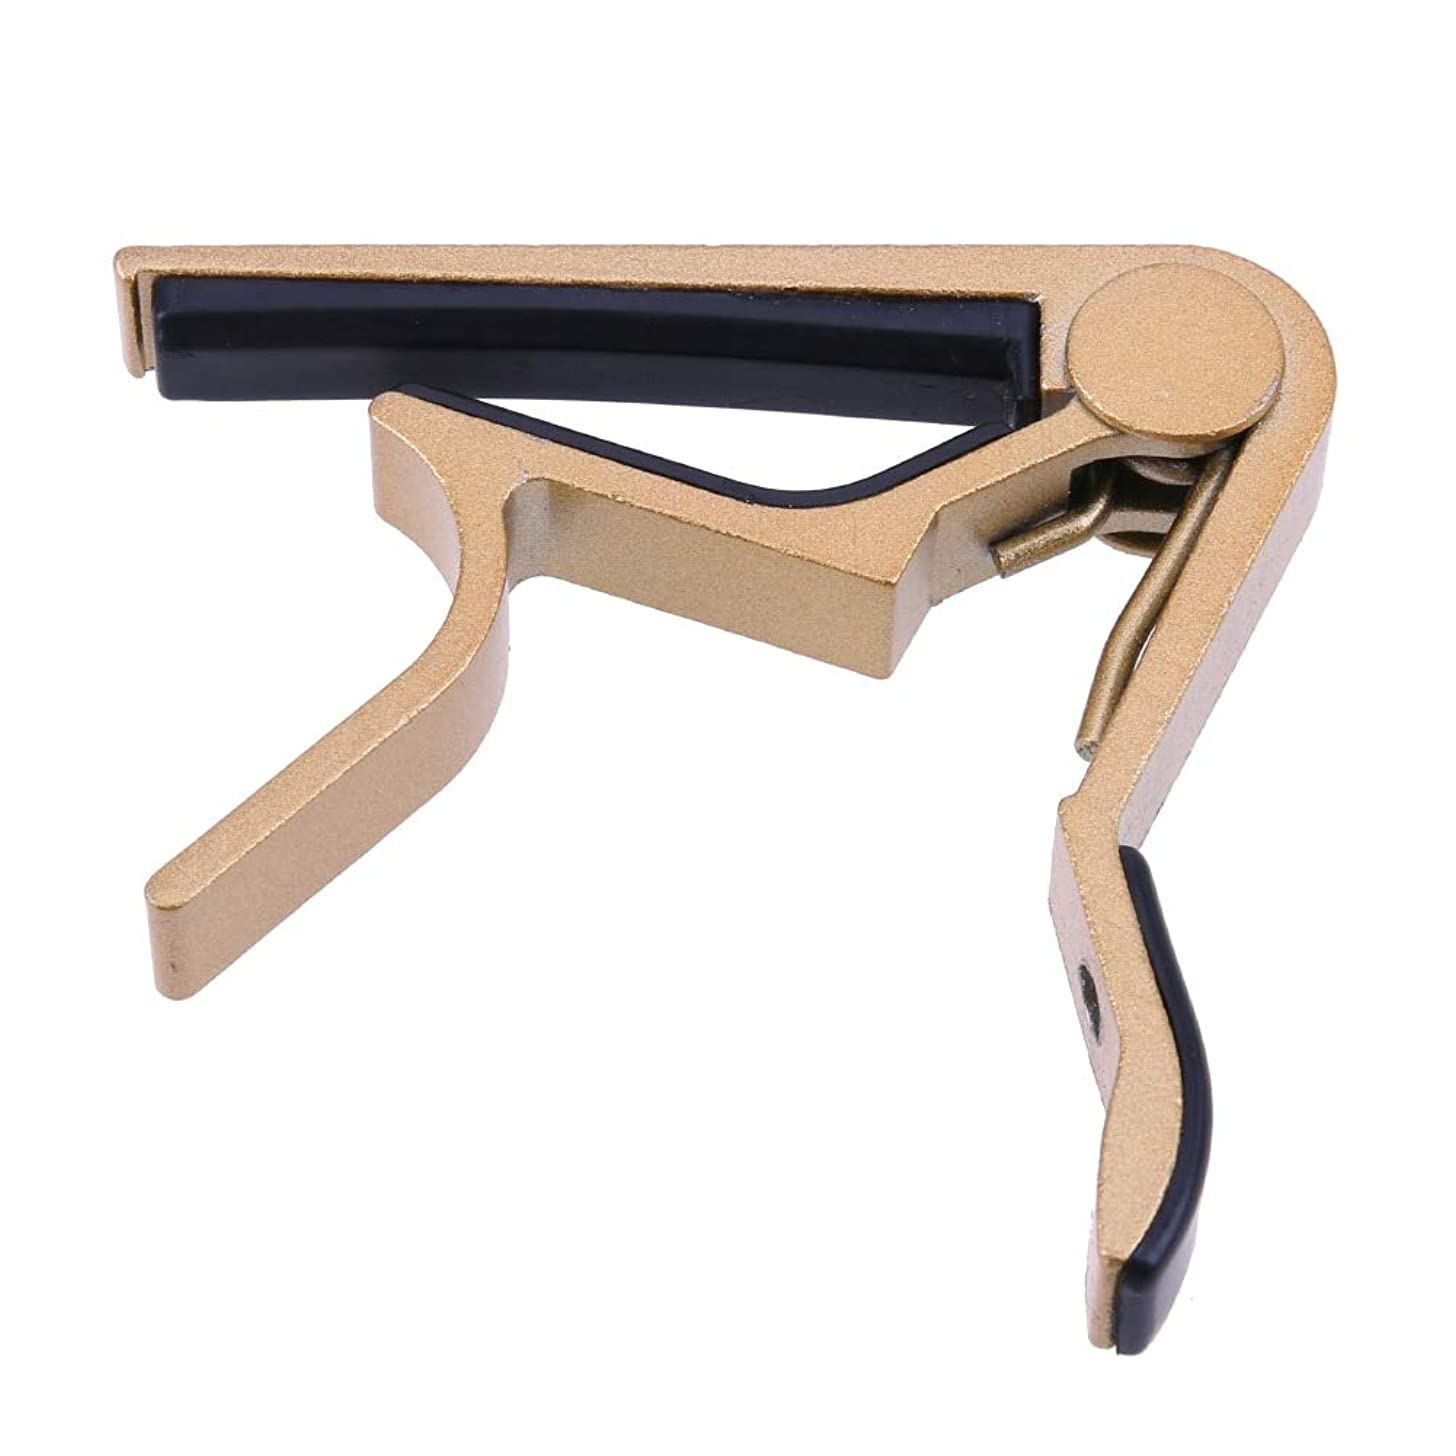 Guitar Accessories Aluminum Alloy Guitar Tuner Clamp Professional Key Trigger Capo for Acoustic Electric Musical Instruments